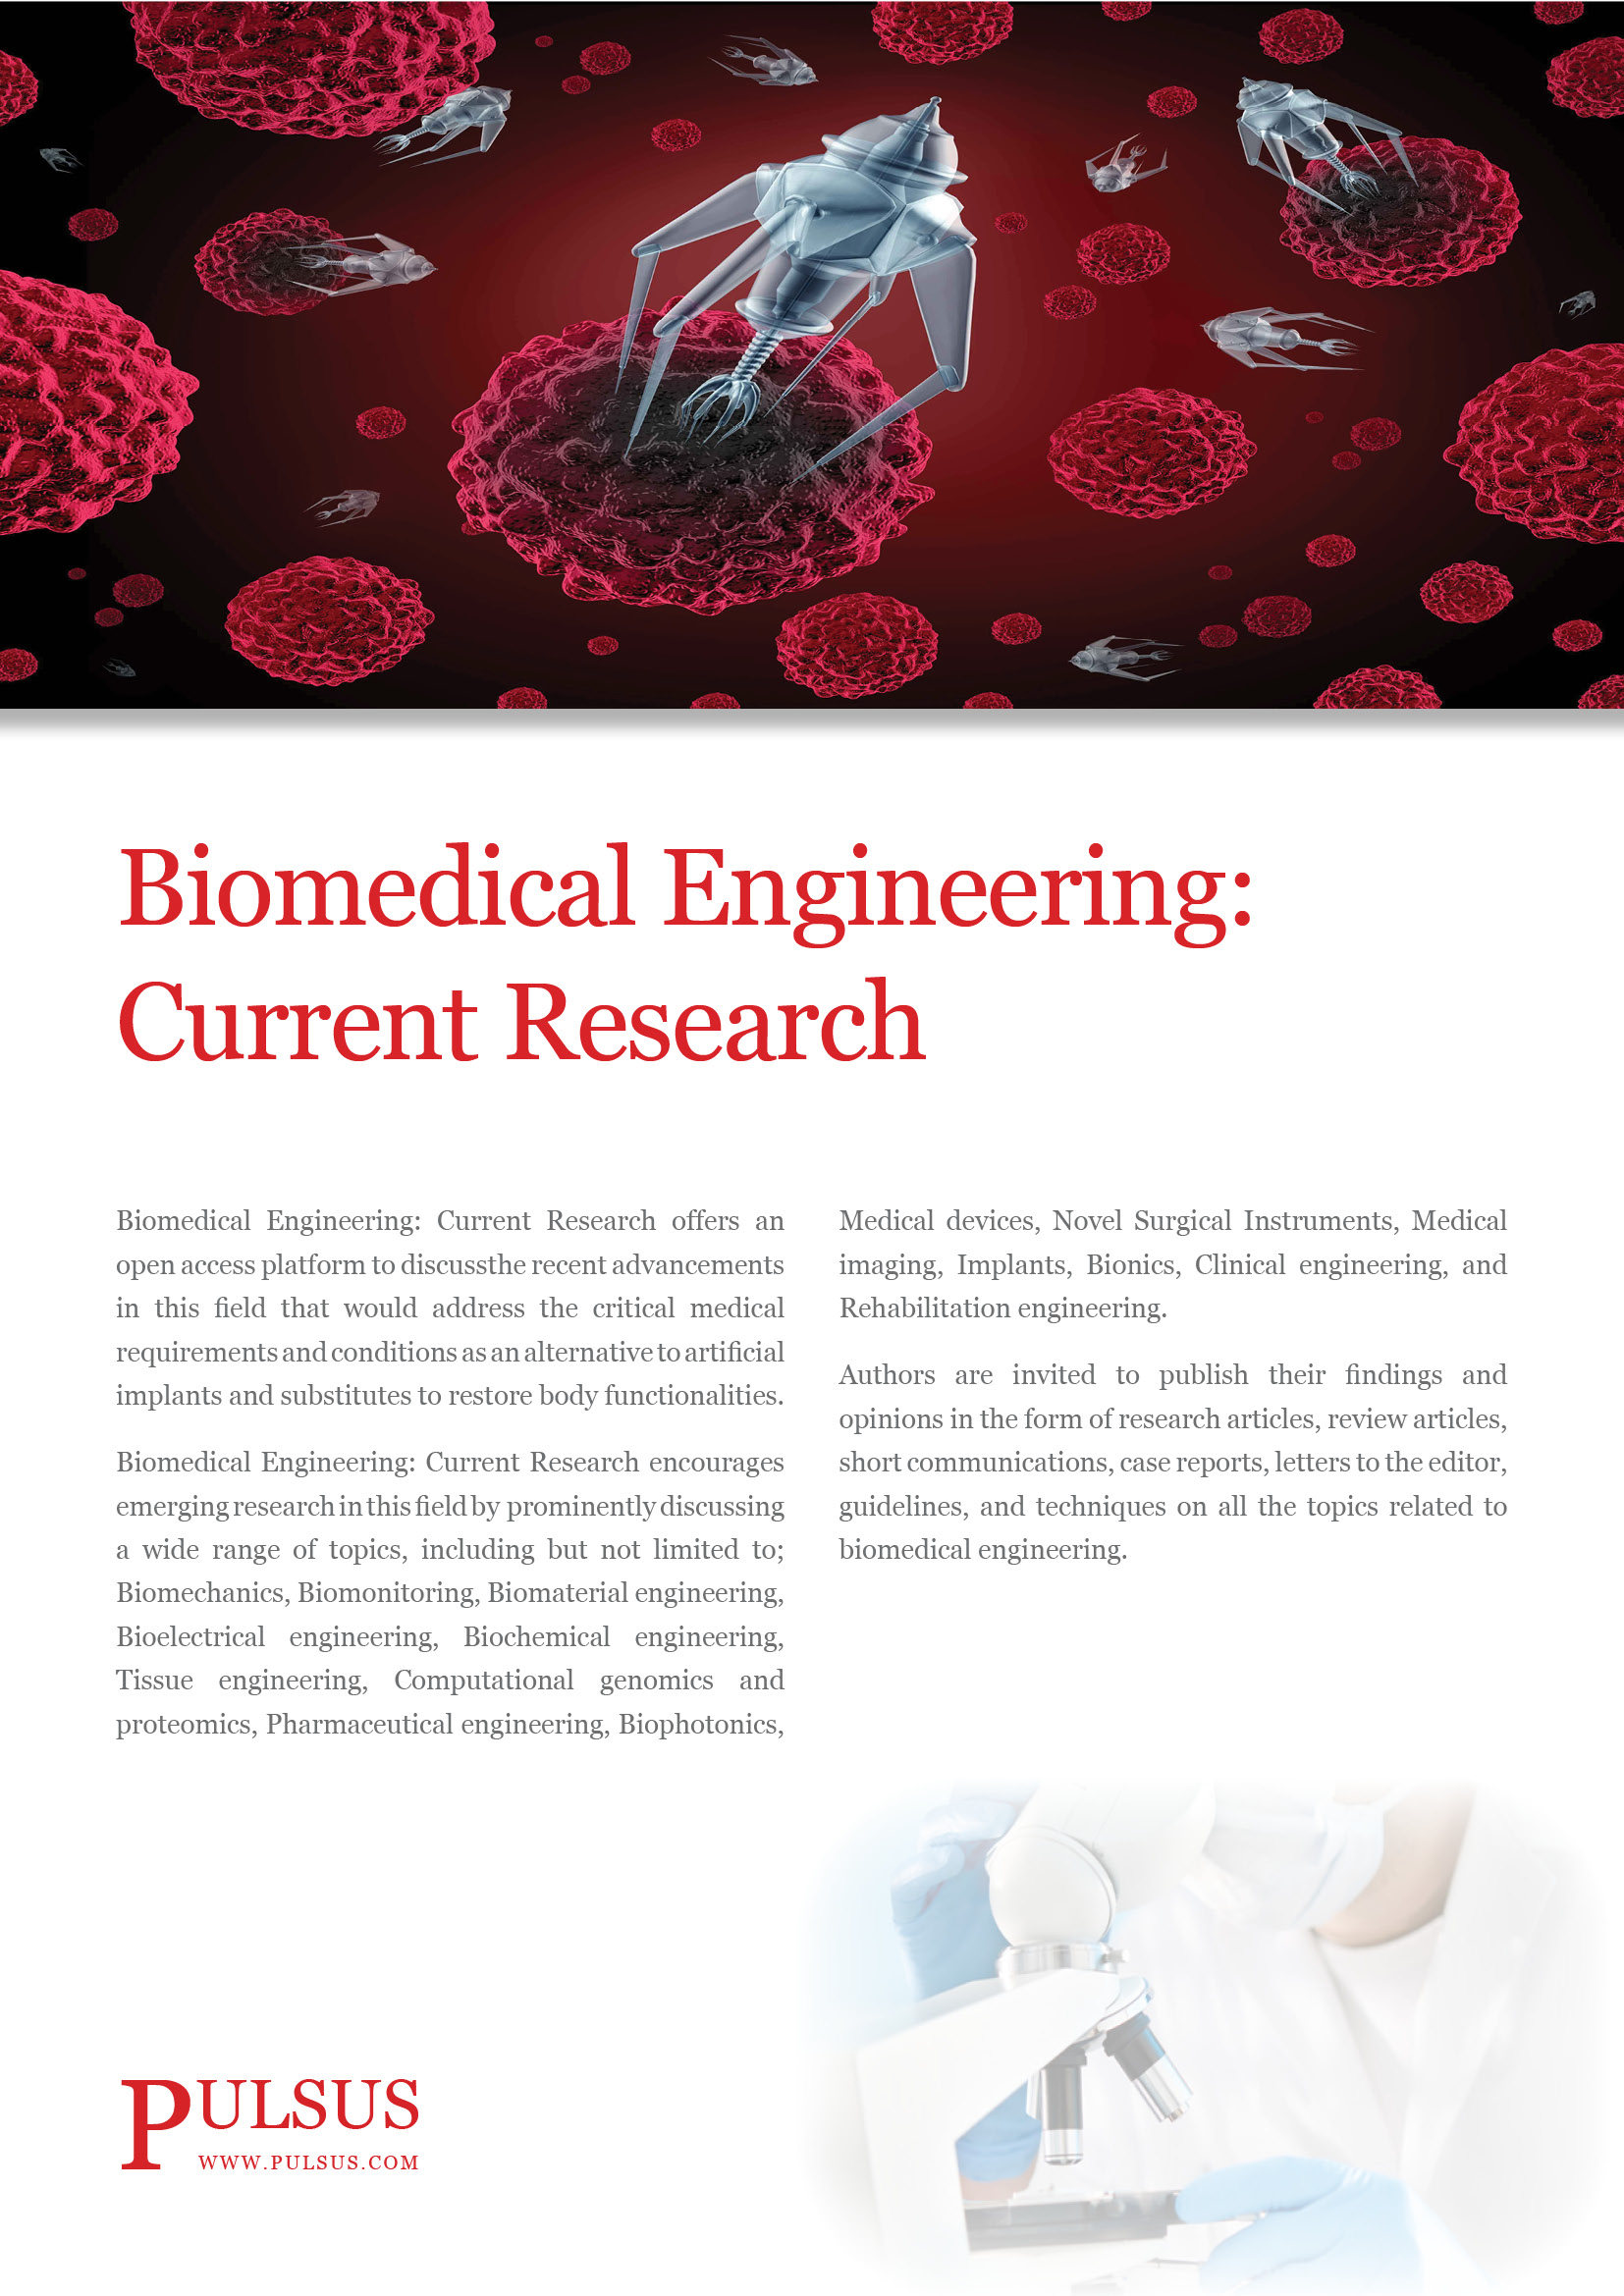 009 Biomedical Engineering Current Research Flyer Medical Article Topics Amazing Full